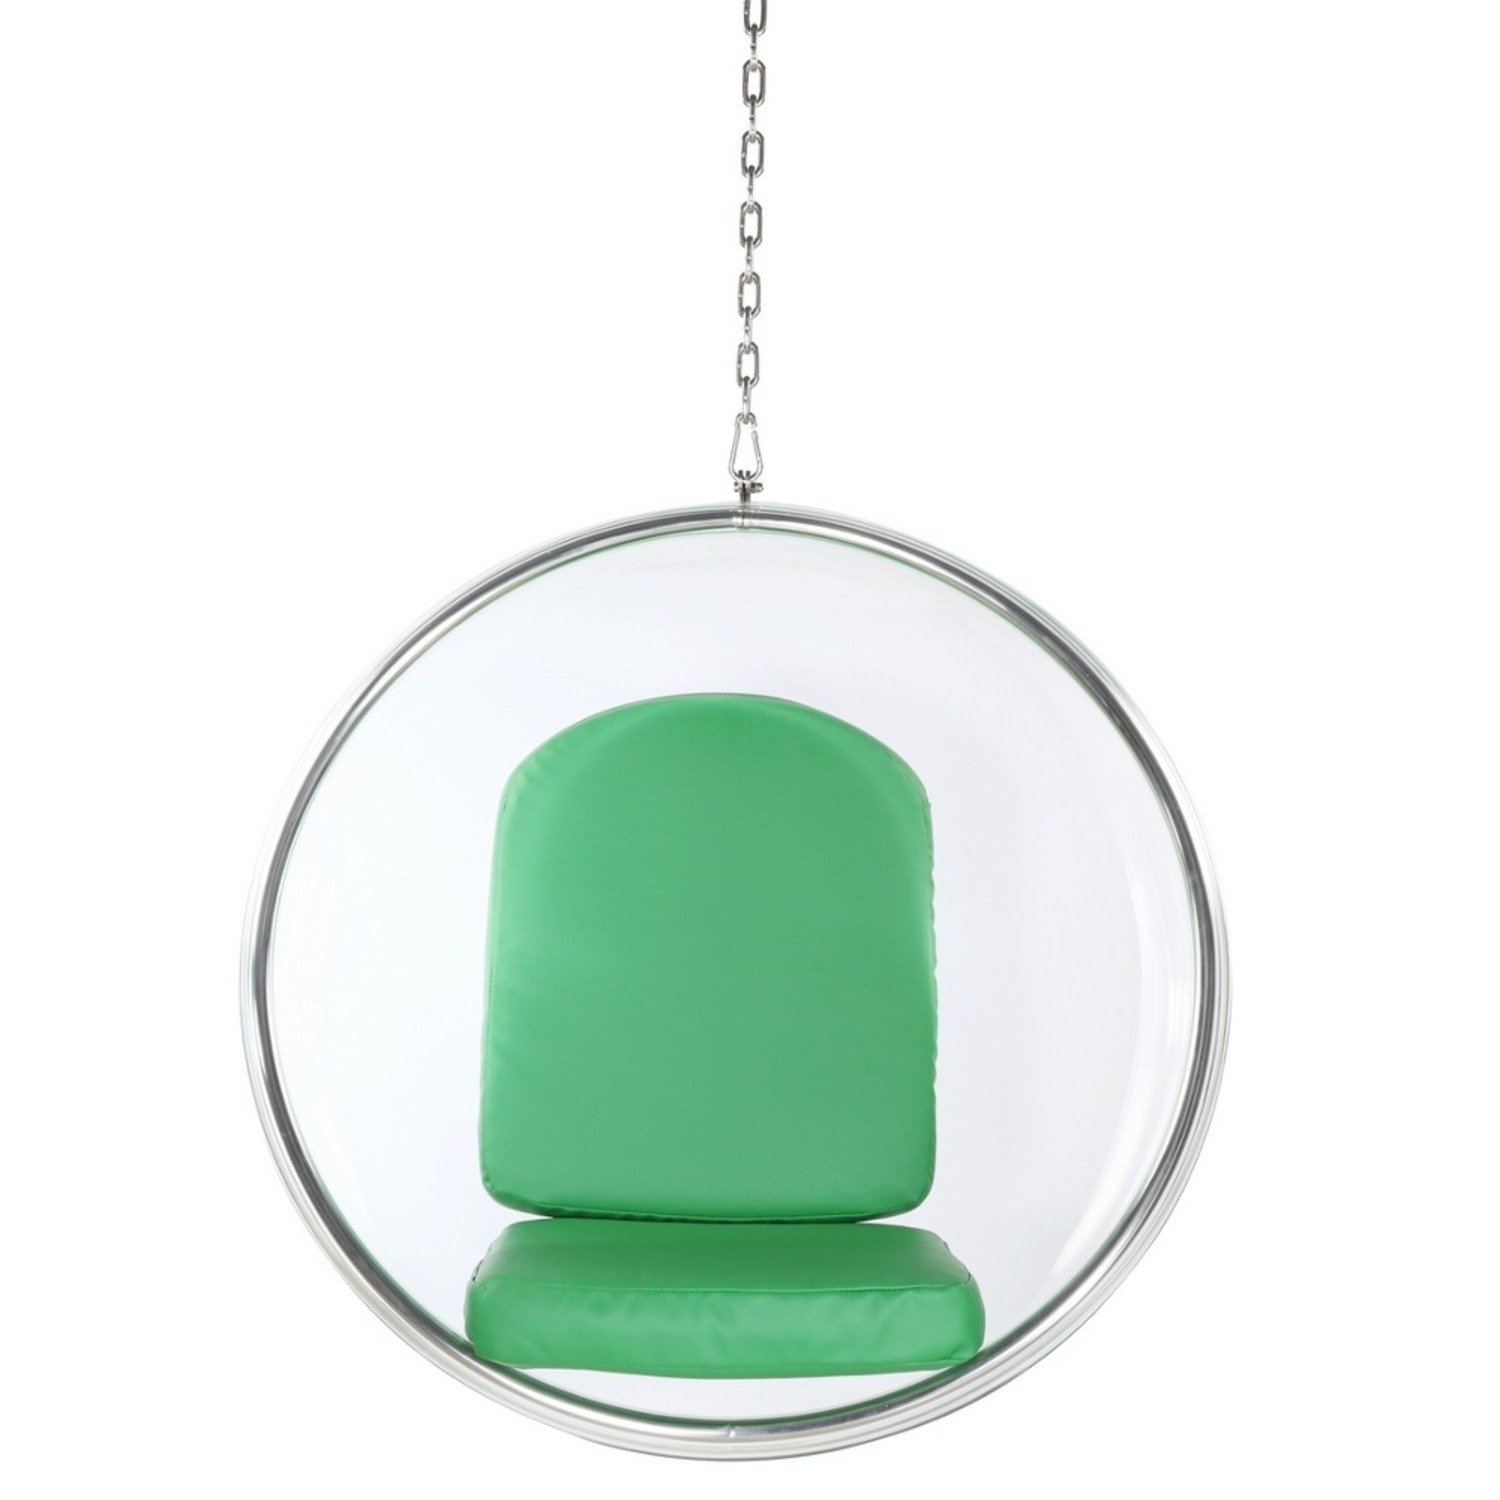 Hanging Chair In Clear Acrylic & Green PU Leather - image-5